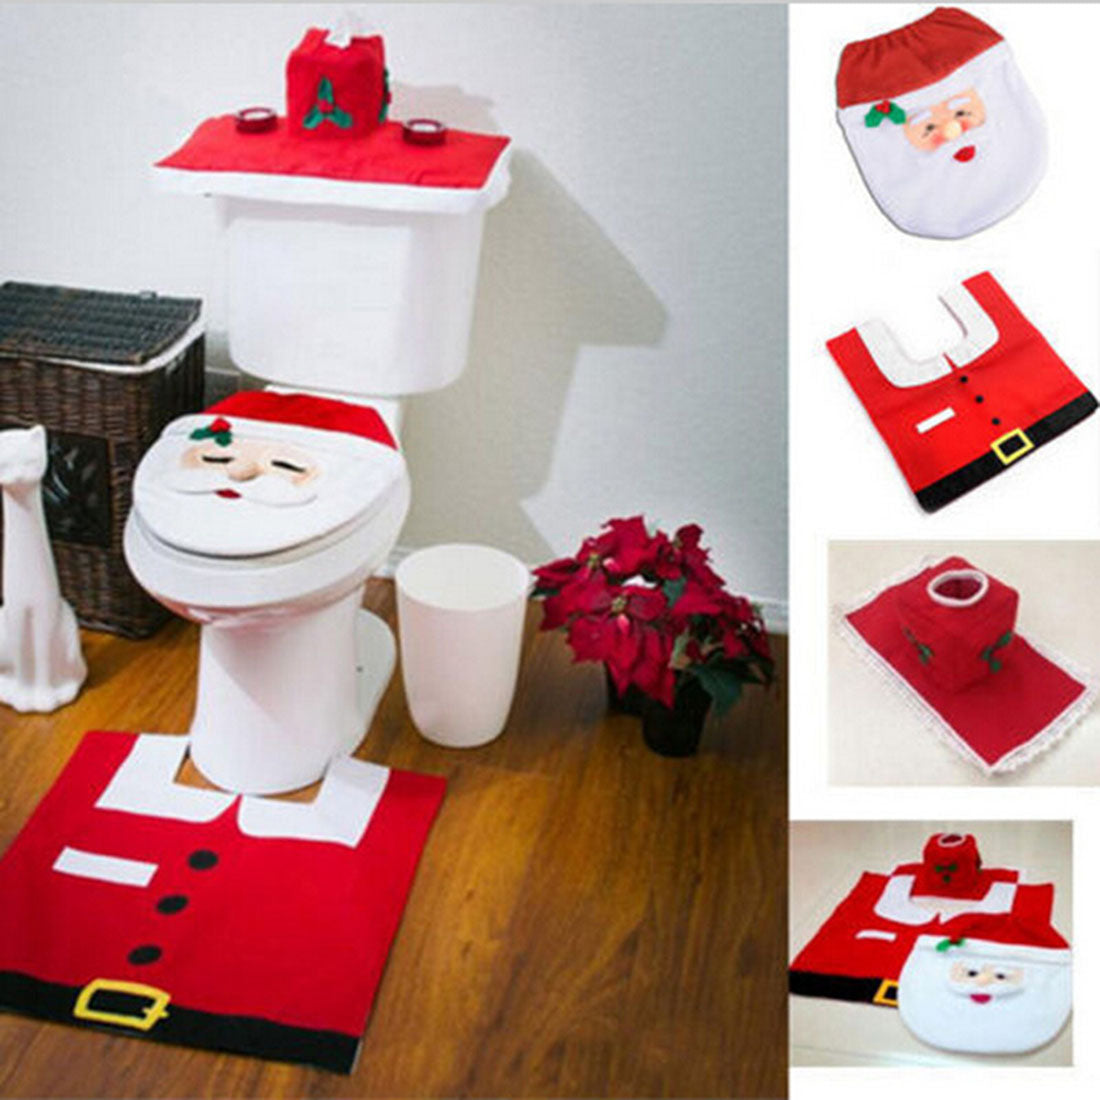 3Pcs Set Christmas Bathroom Toilet Seats Cover